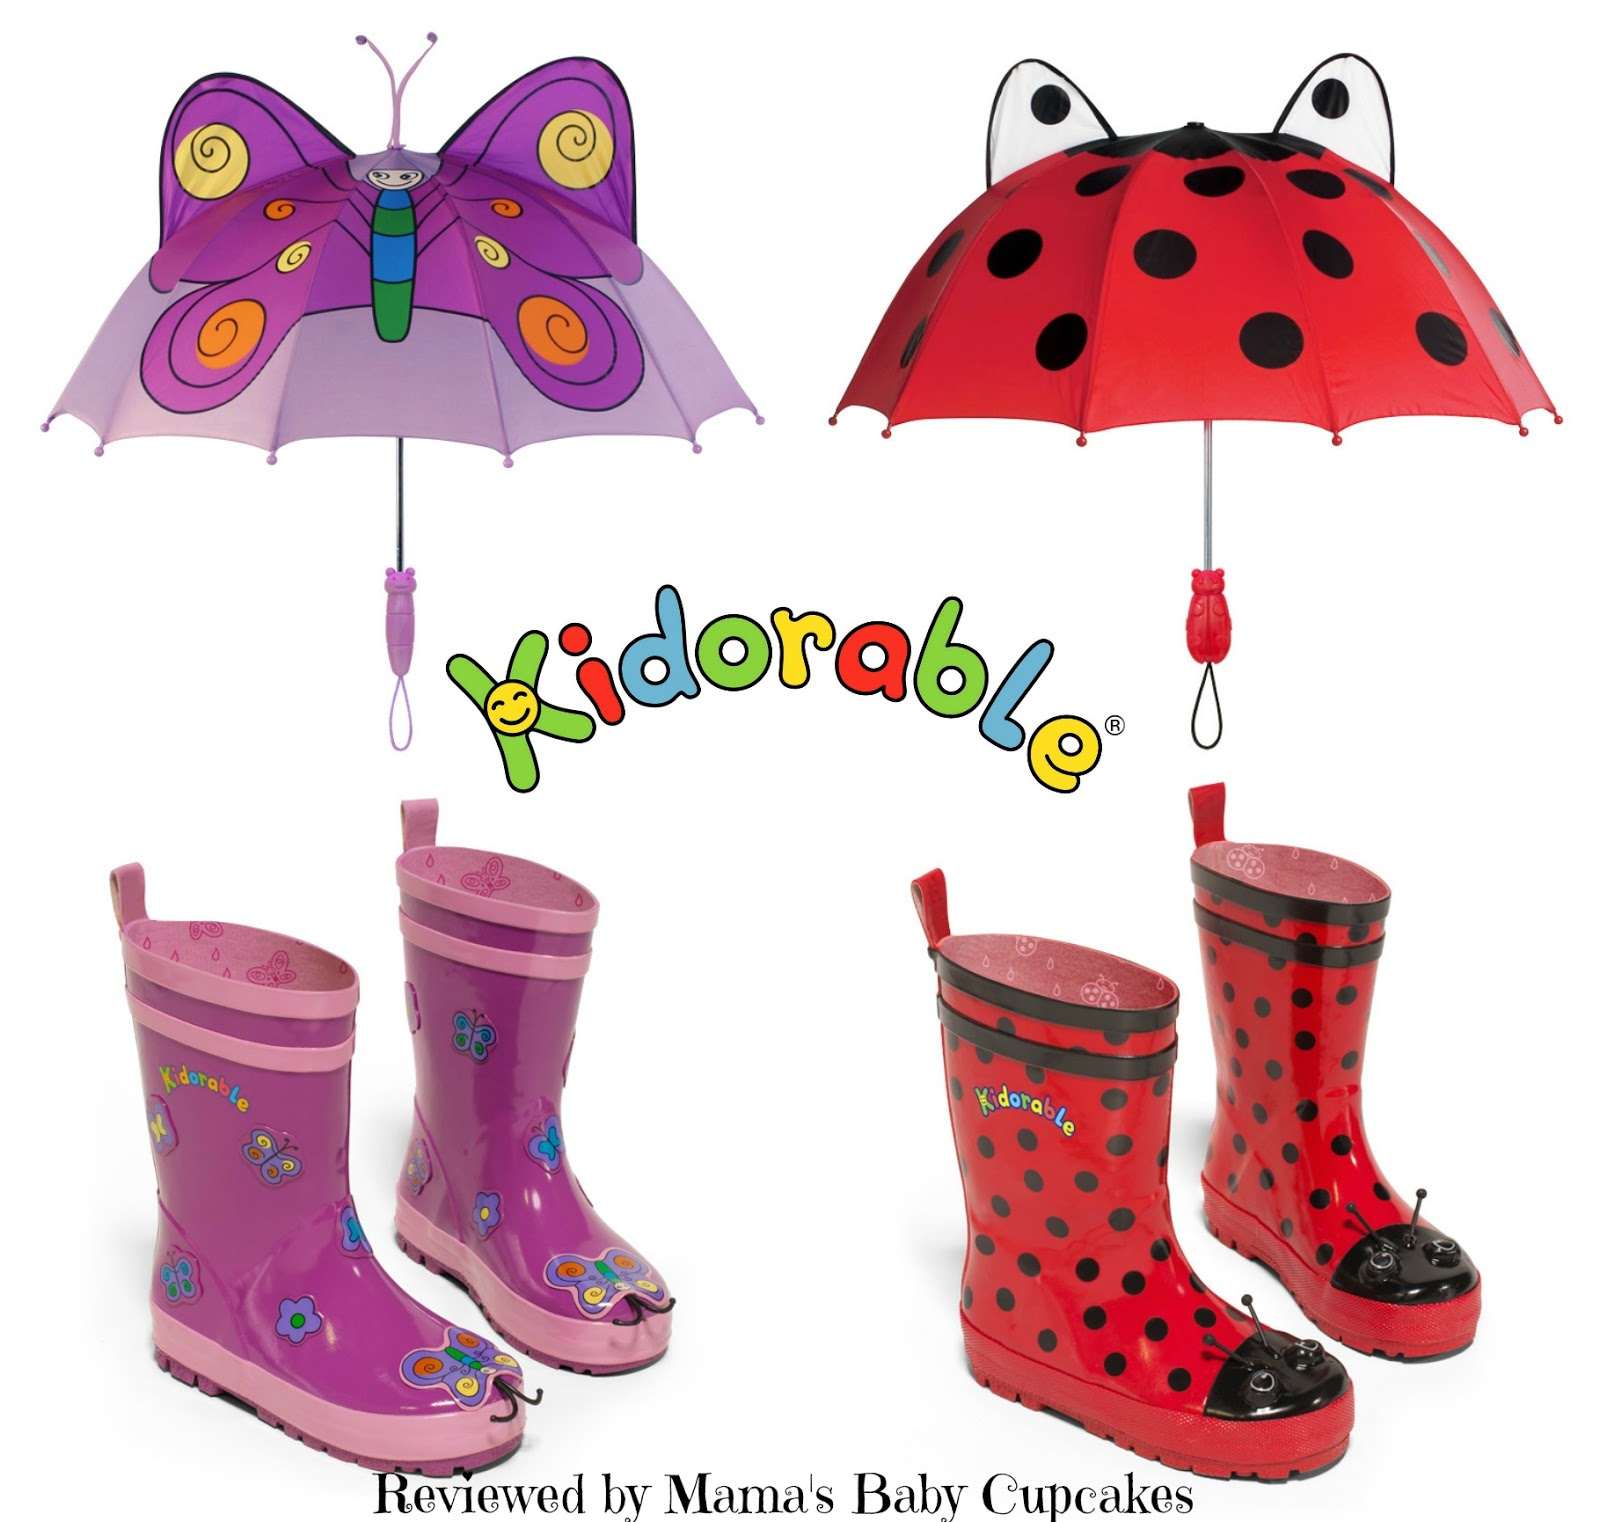 Mama's Baby Cupcakes: Kidorable: Rain Boots and Umbrellas Review